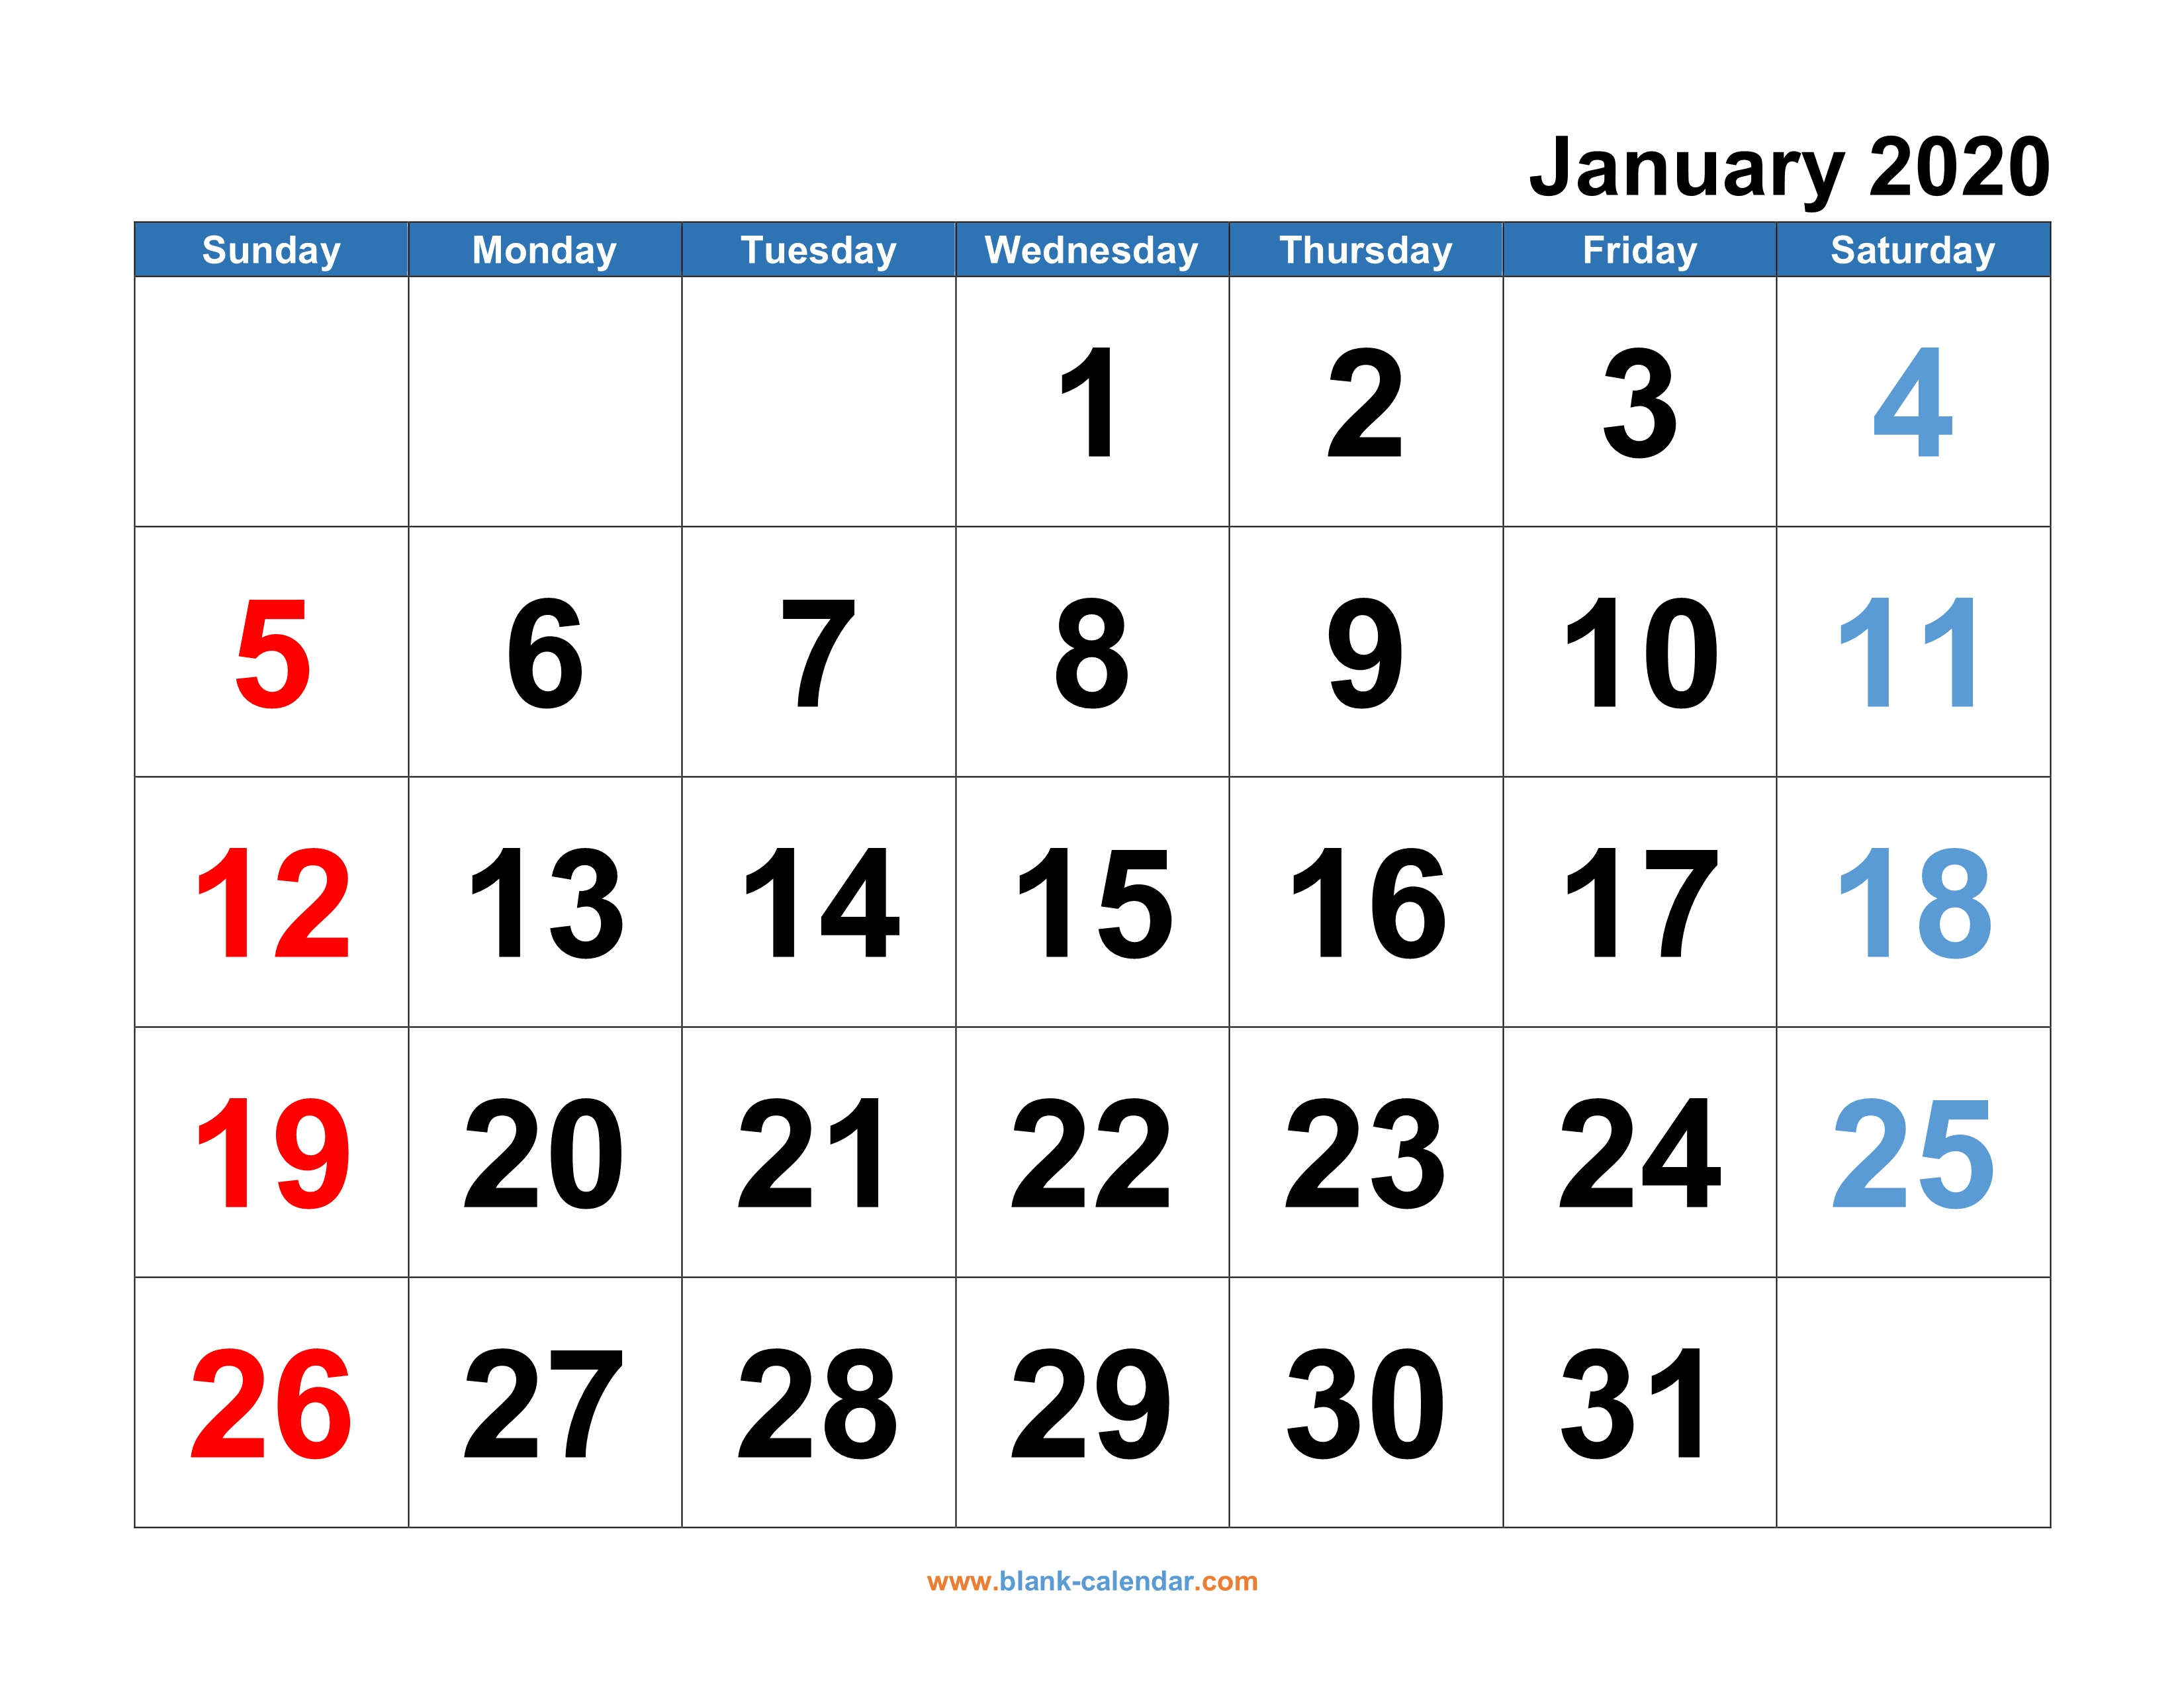 Monthly Calendar 2020 | Free Download, Editable And Printable with 2020 Calendar I Can Edit